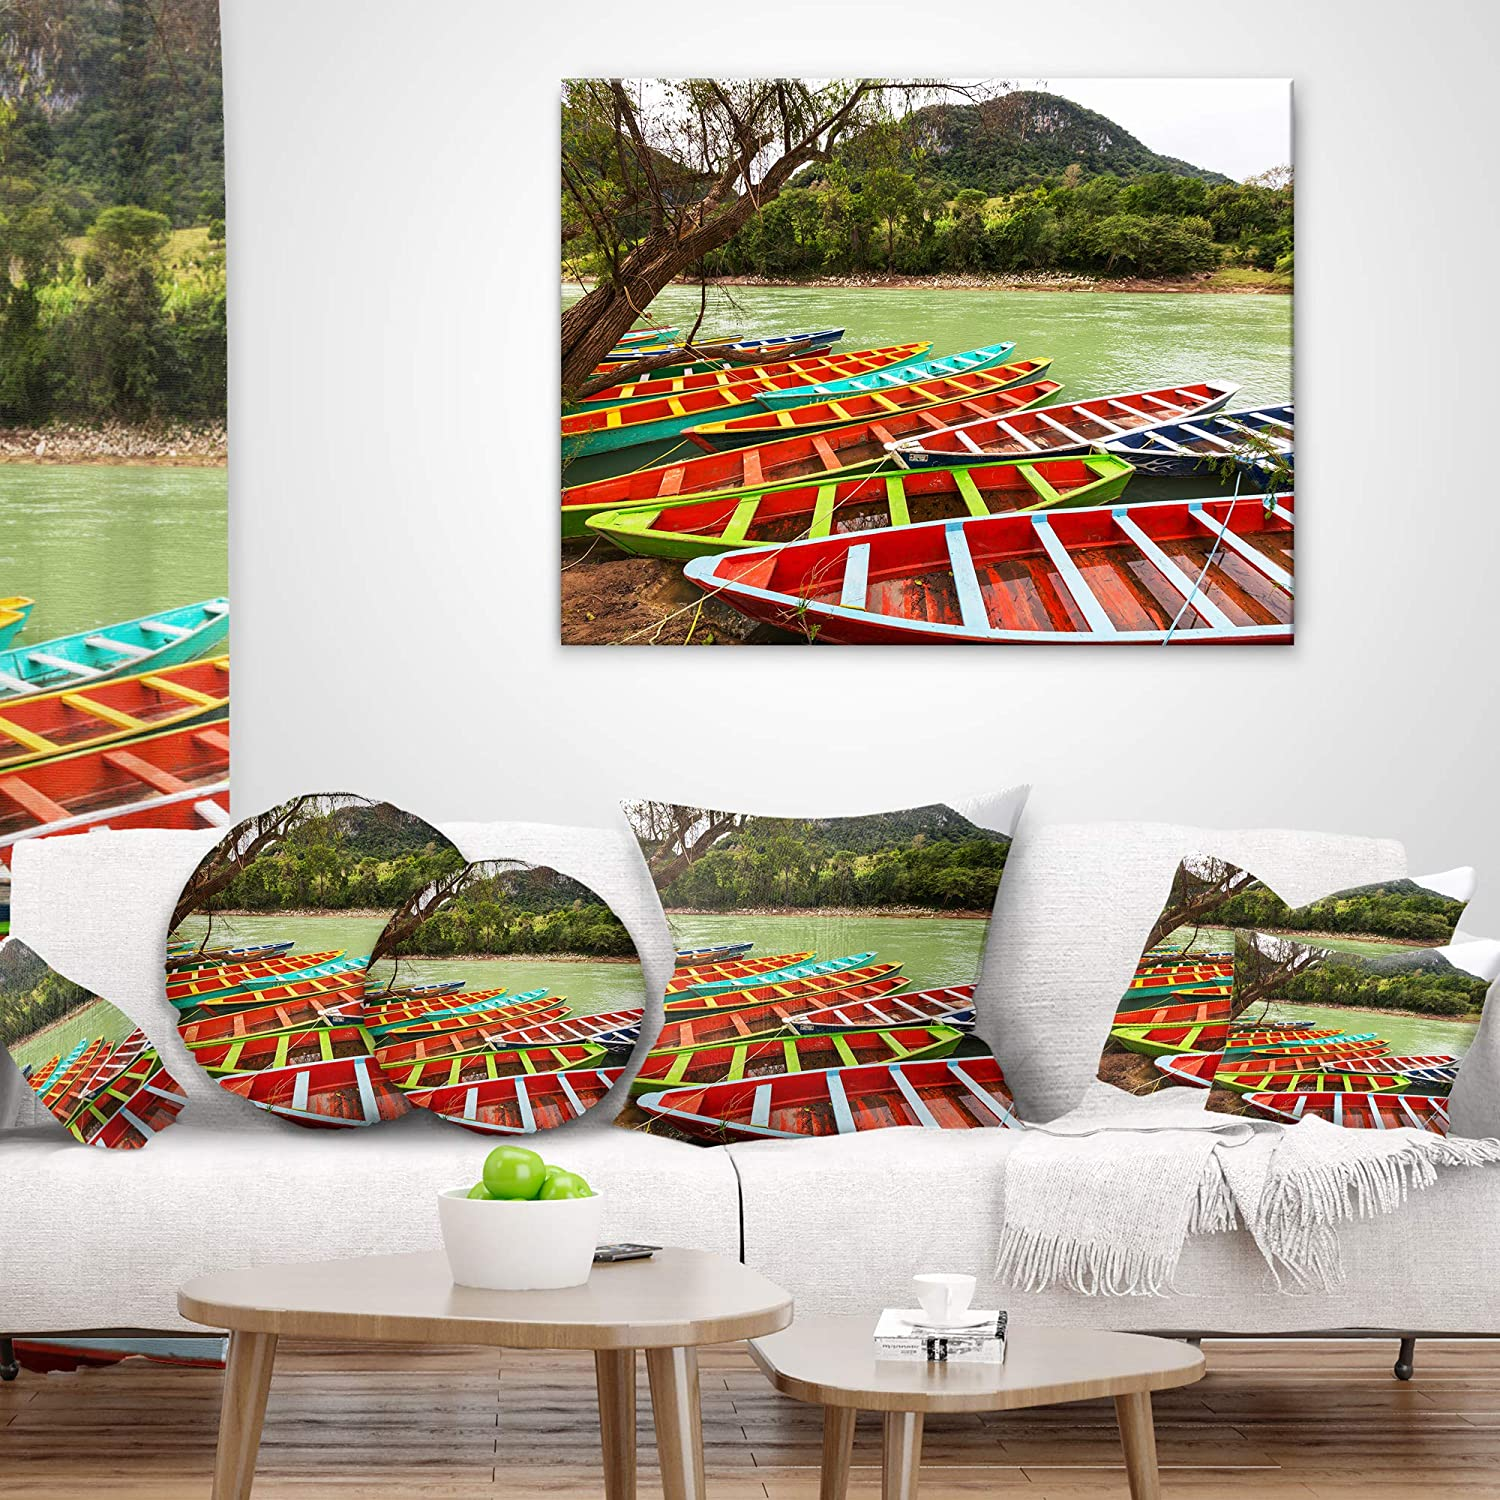 x 18 in Designart CU12683-18-18 Colorful Boats in Mexico Landscape Printed Cushion Cover for Living Room Sofa Throw Pillow 18 in Insert Side in